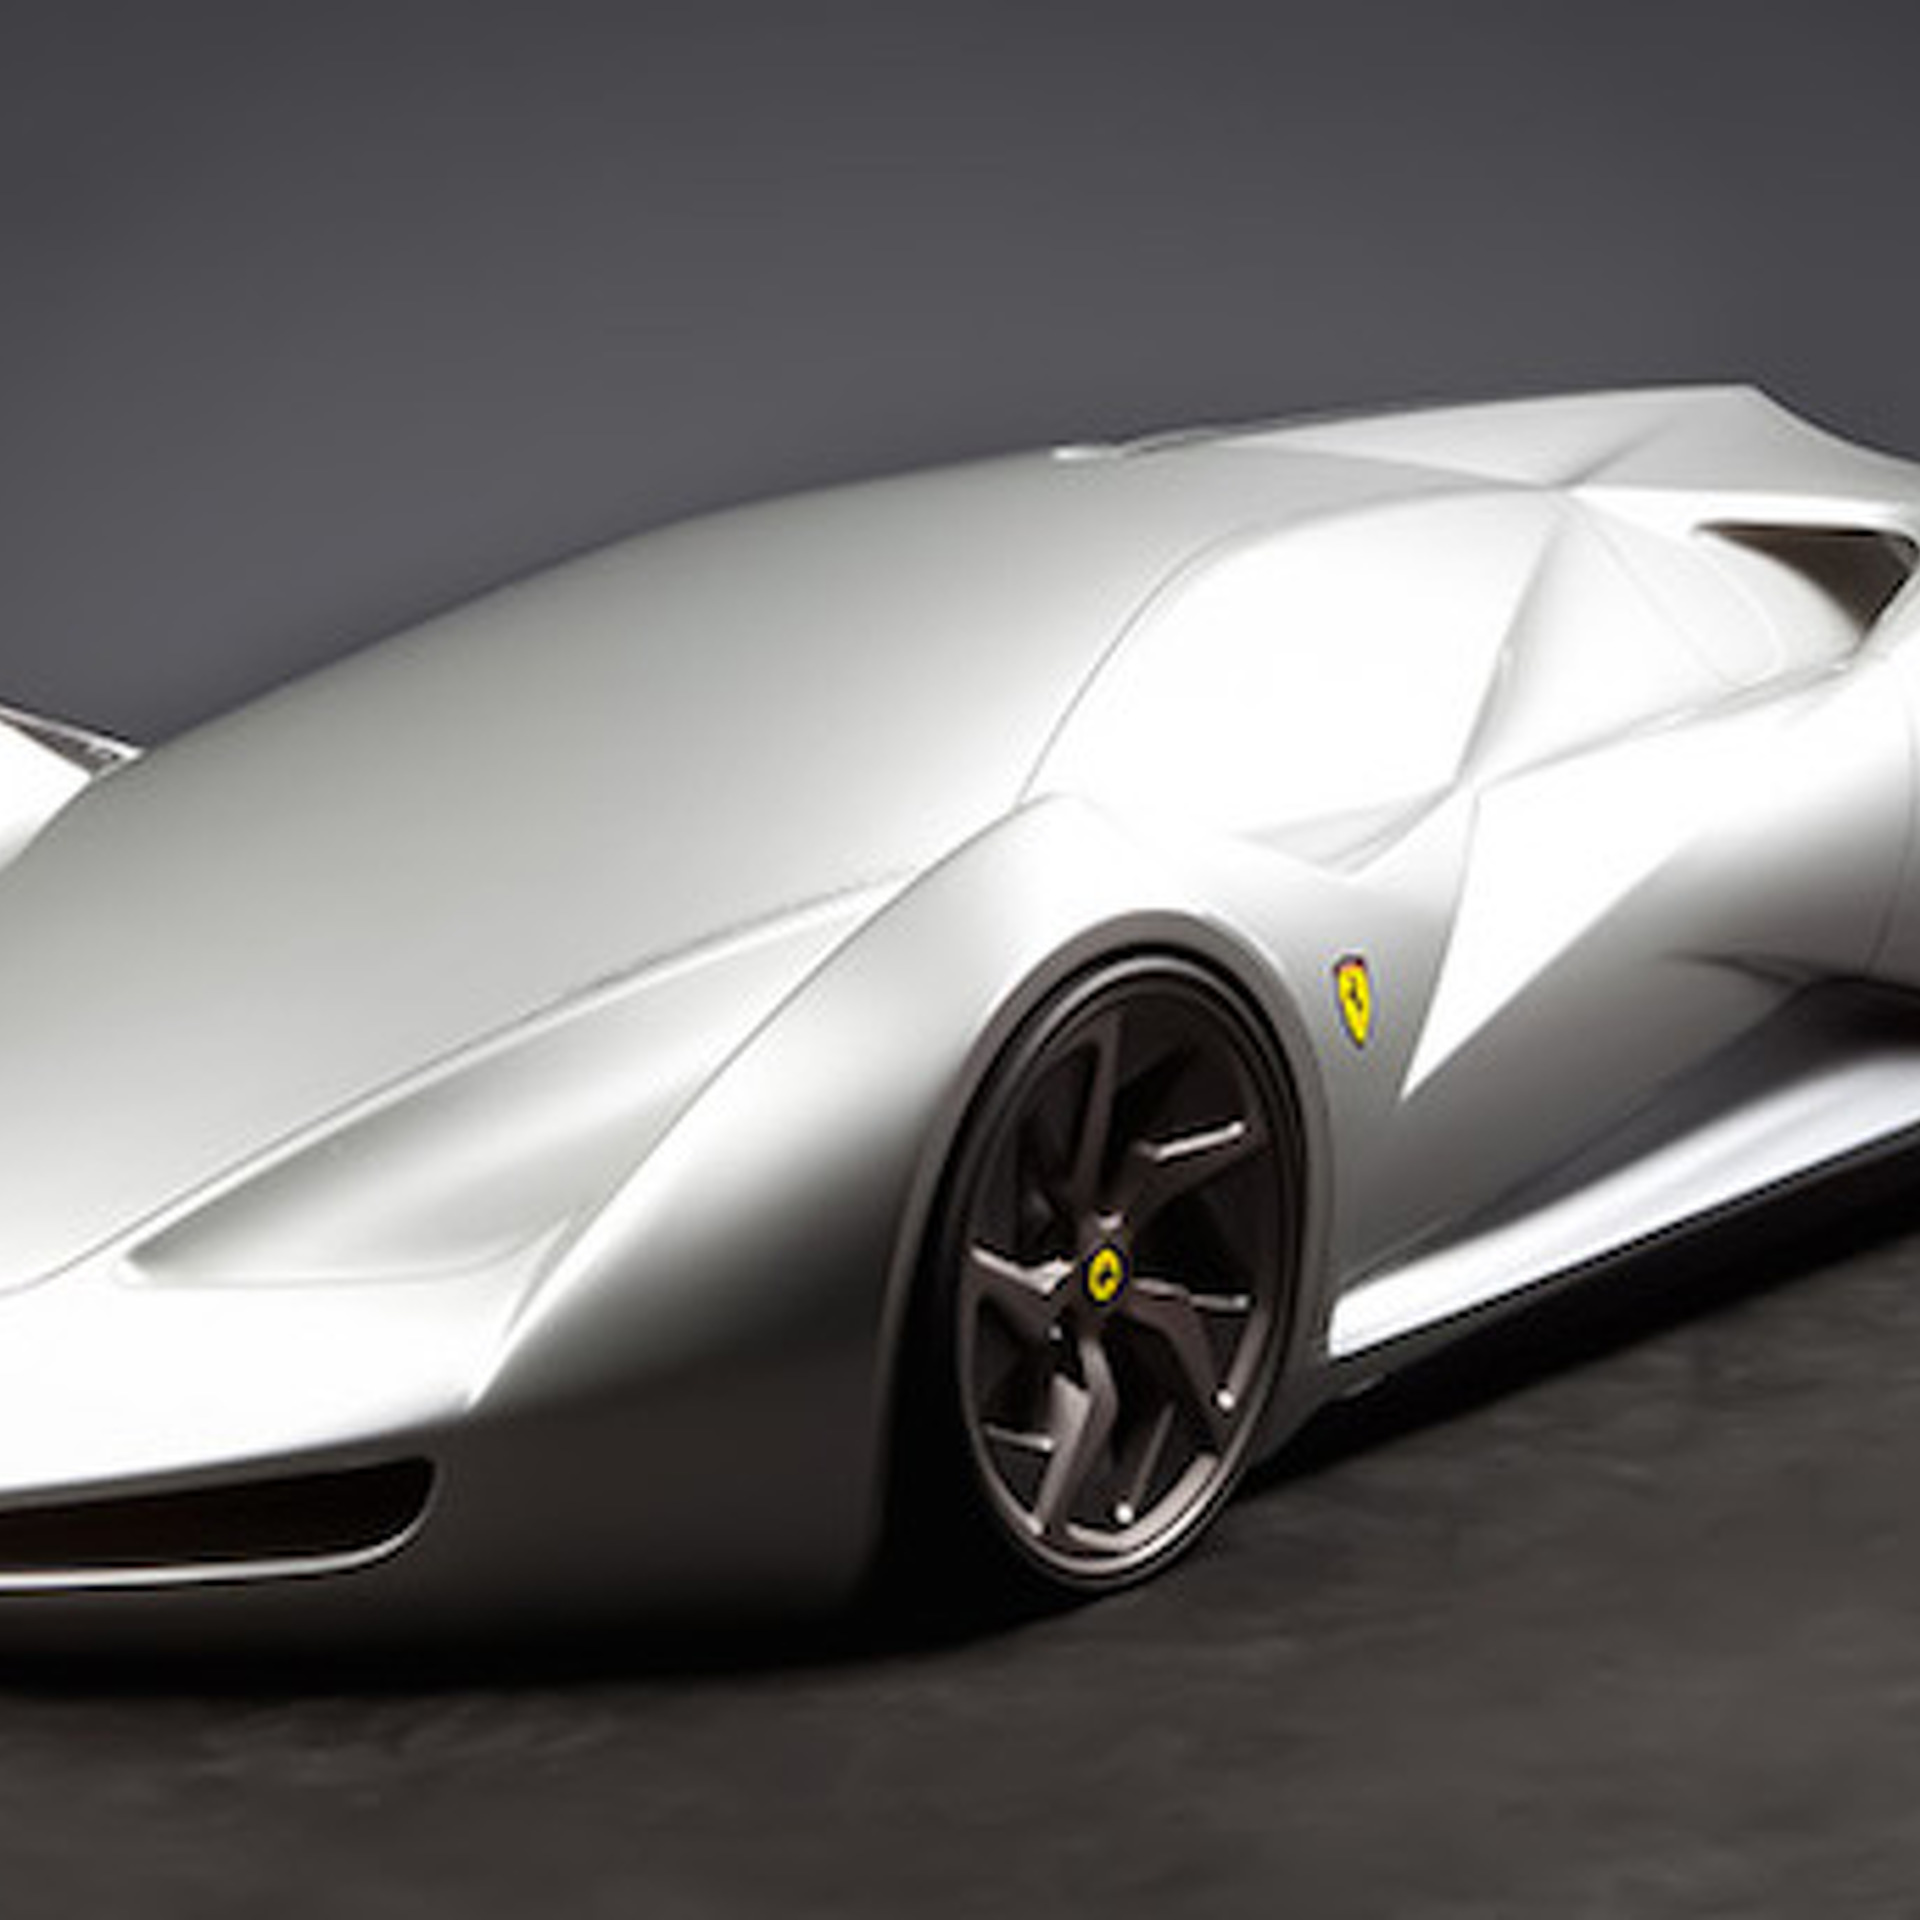 12 Ferrari Concept Cars That Could Preview The Future Of The Brand Motor1 Com Photos